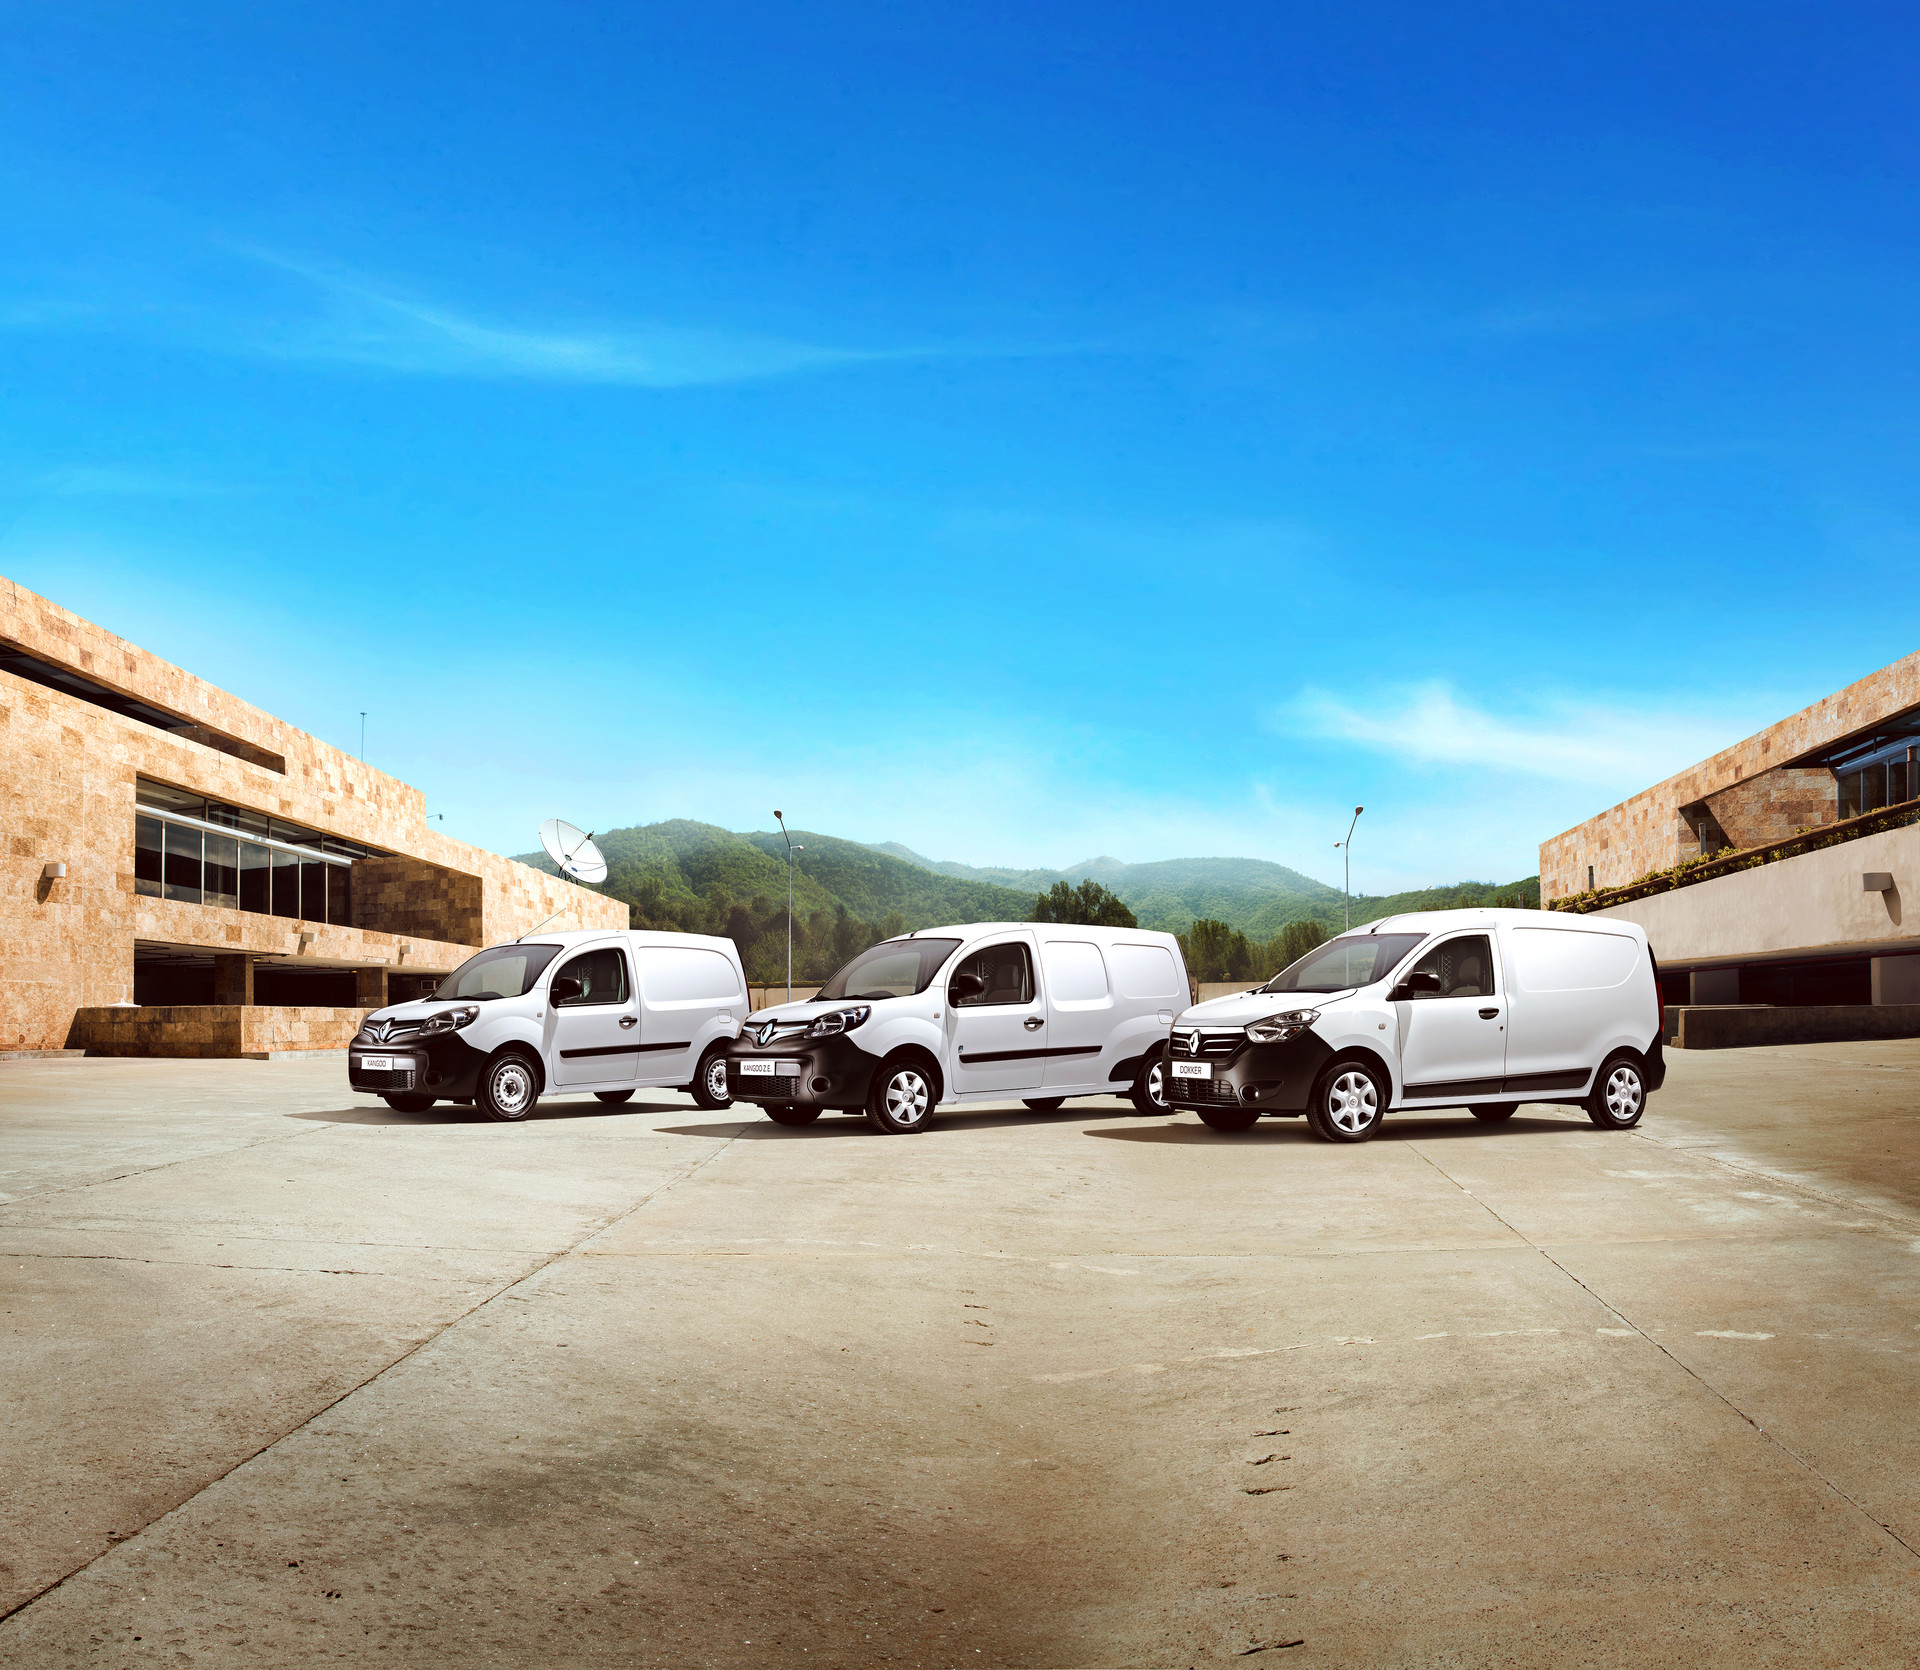 - Comercial vehicles